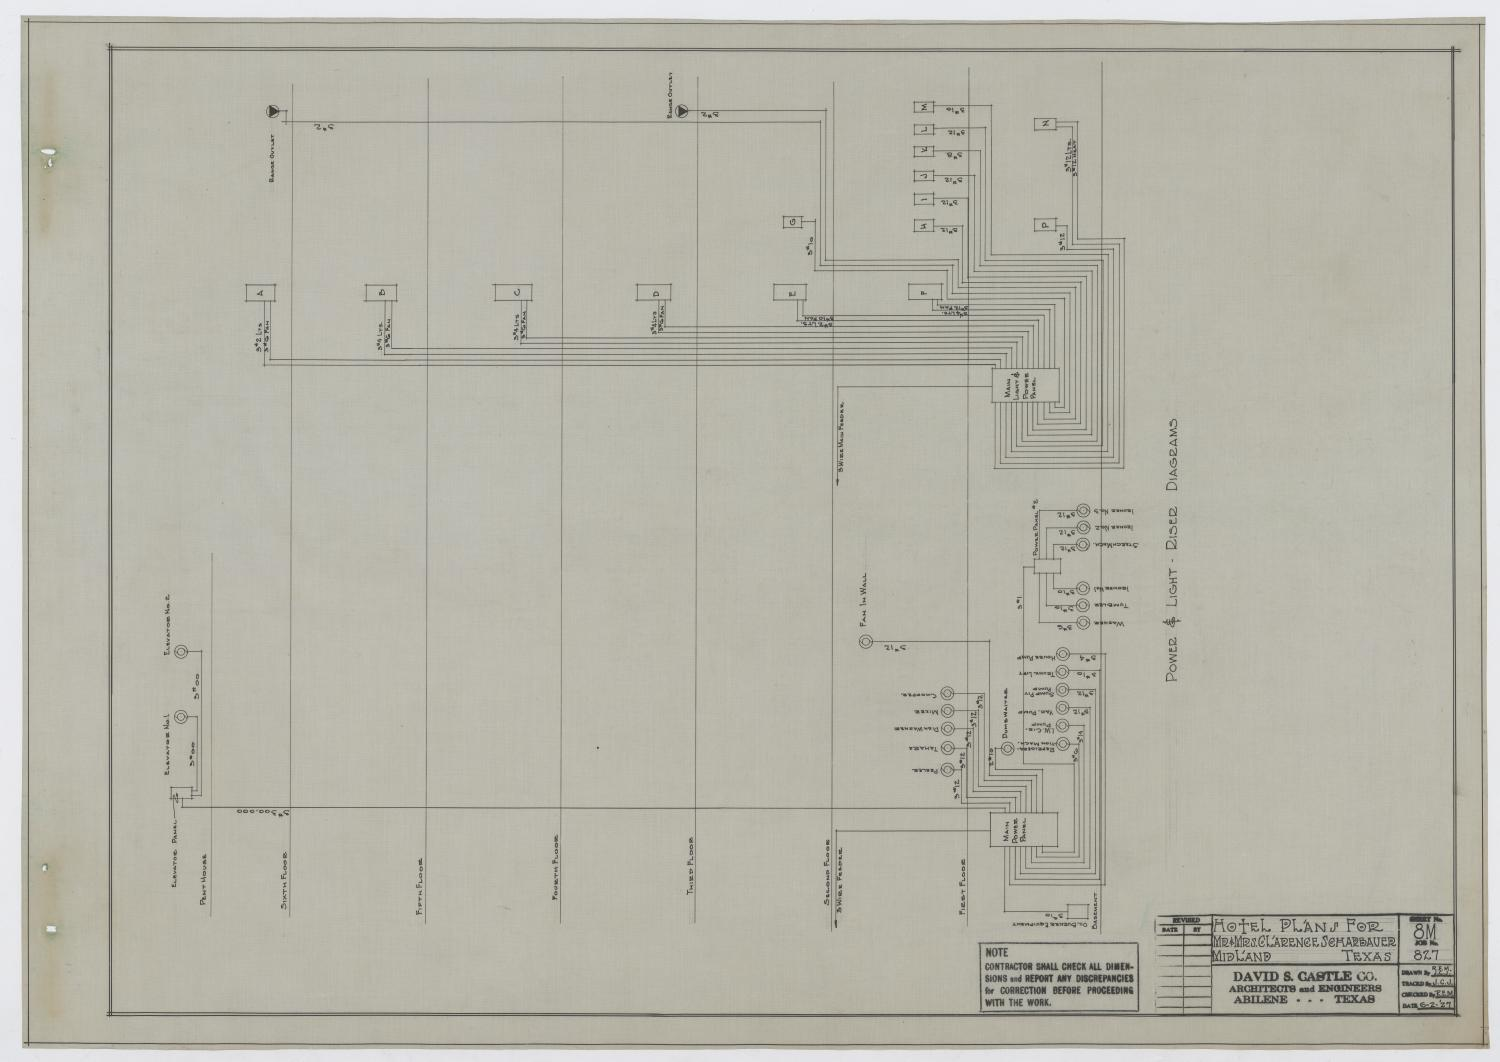 Scharbauer Hotel Mechanical Plans, Midland, Texas: Power and Light ...